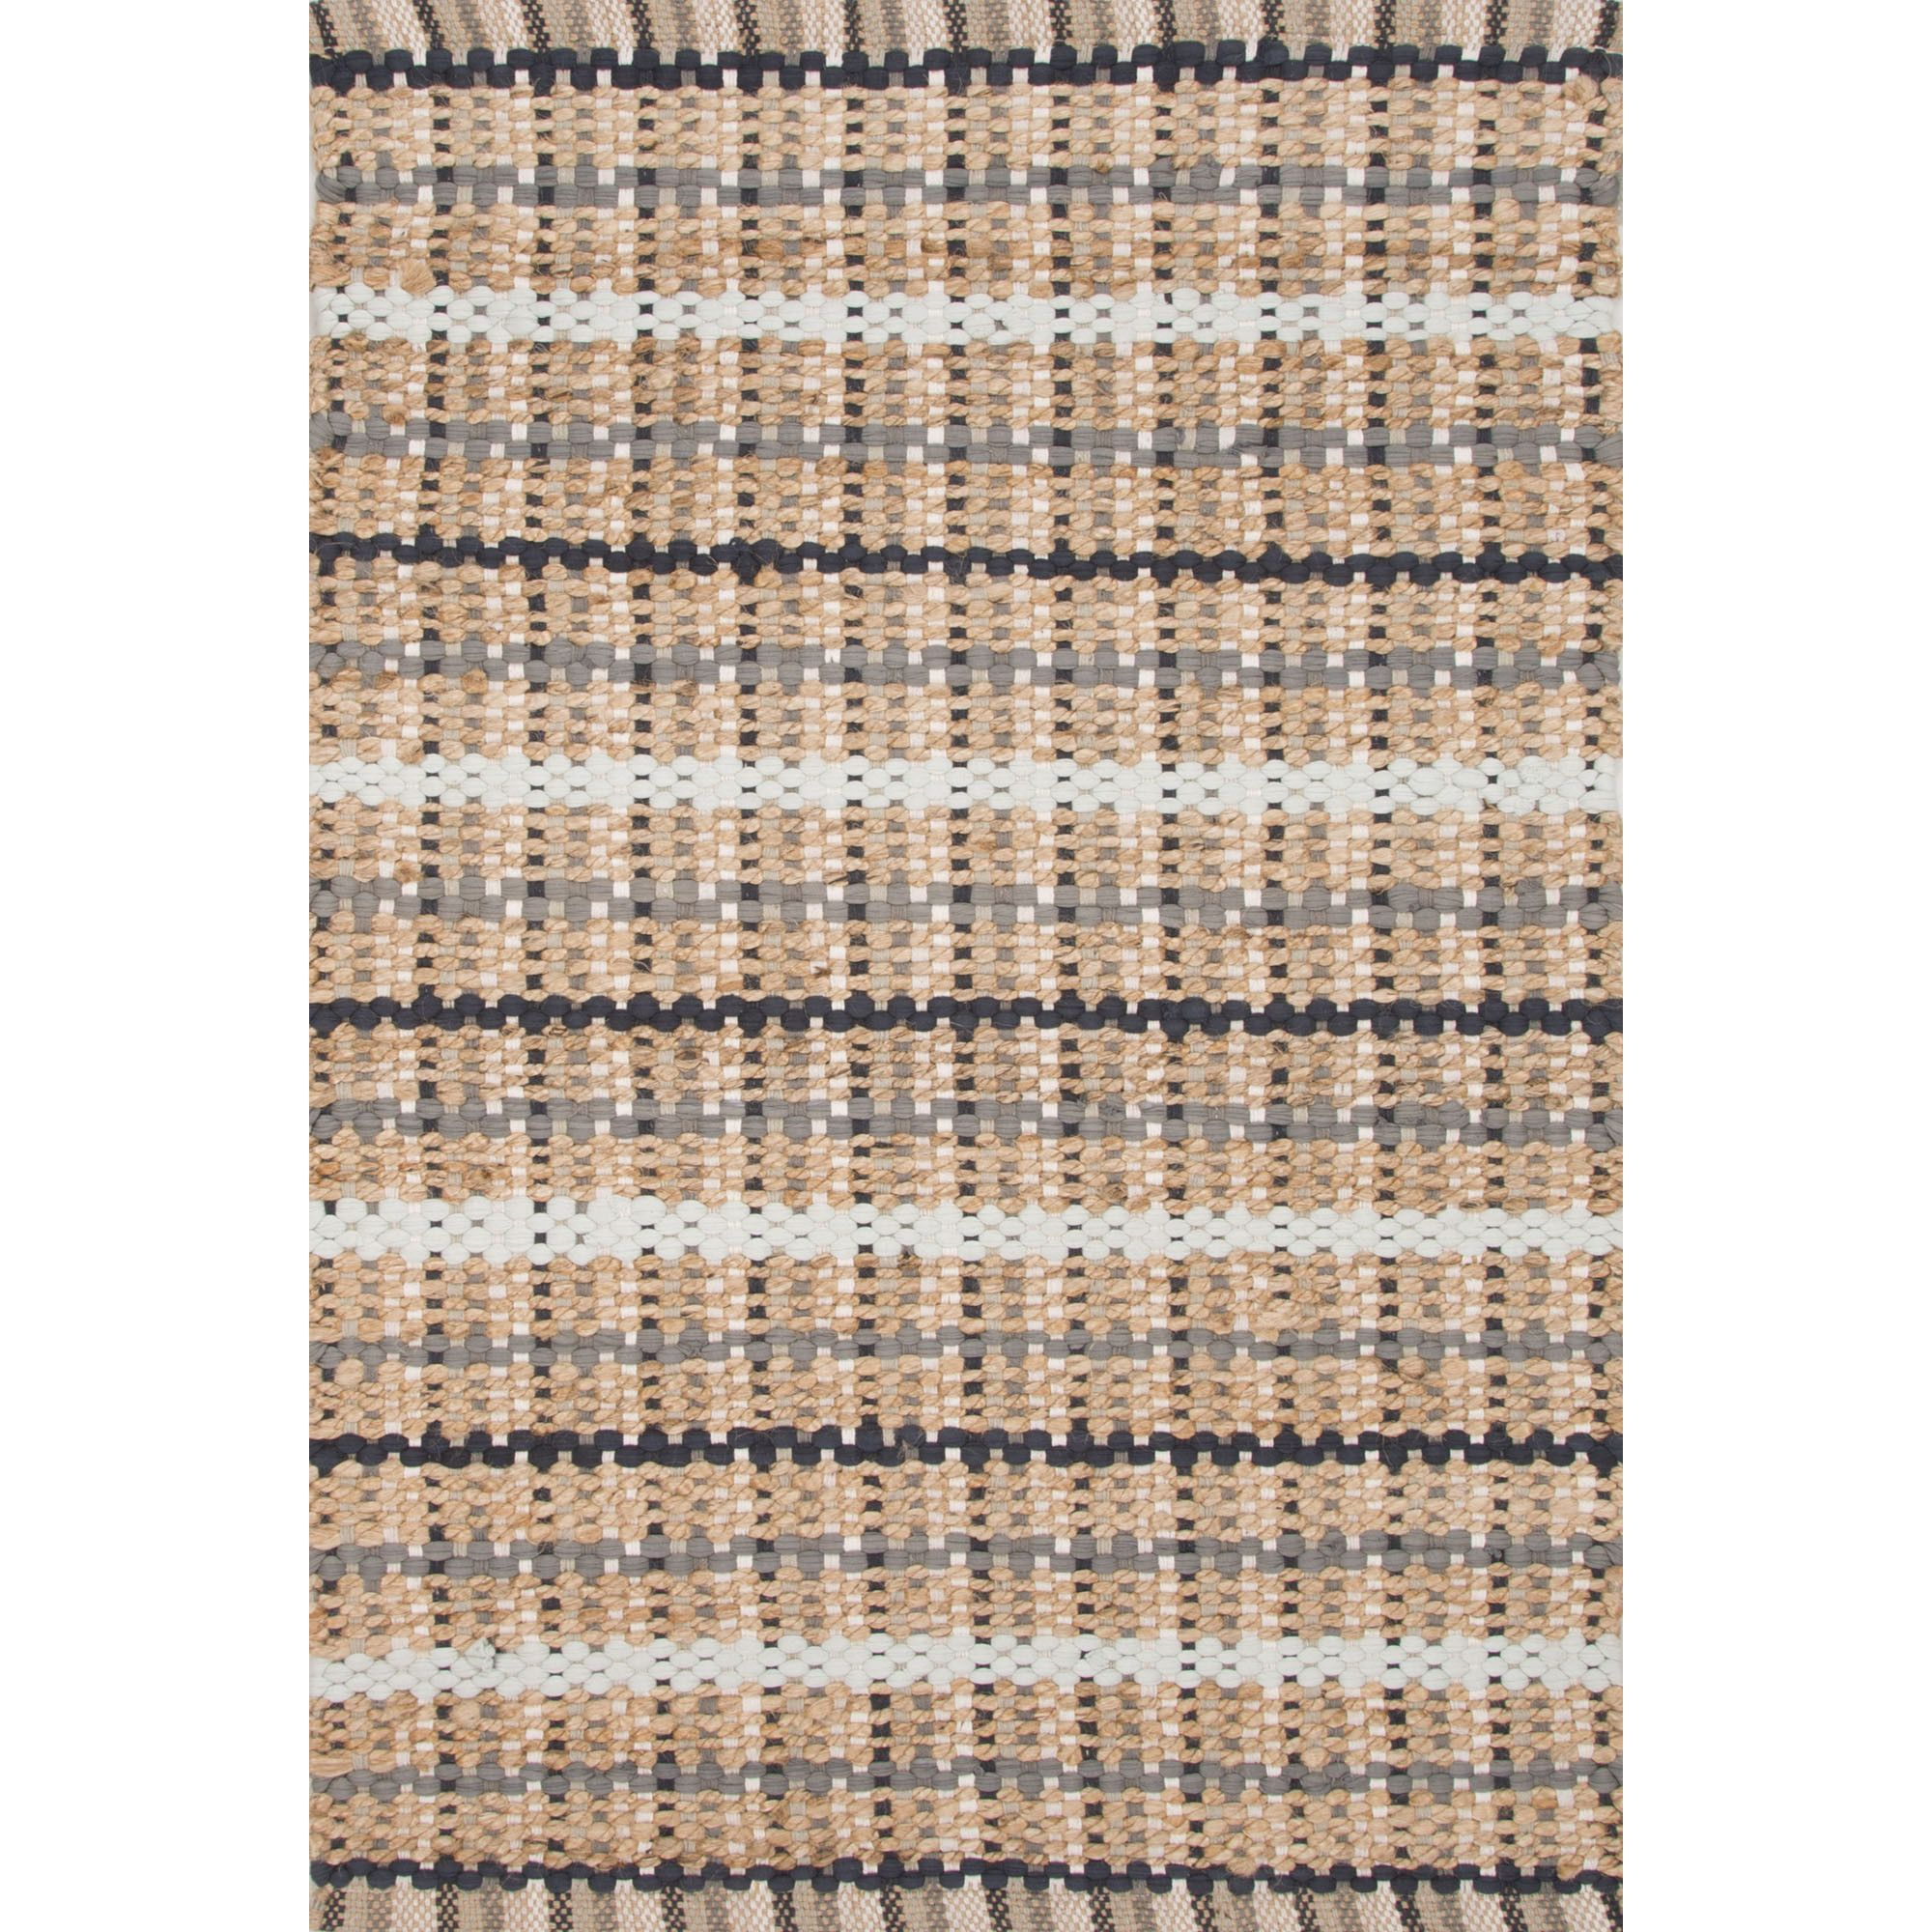 Andes Collection Harringdon Rug in Liberty By Jaipur